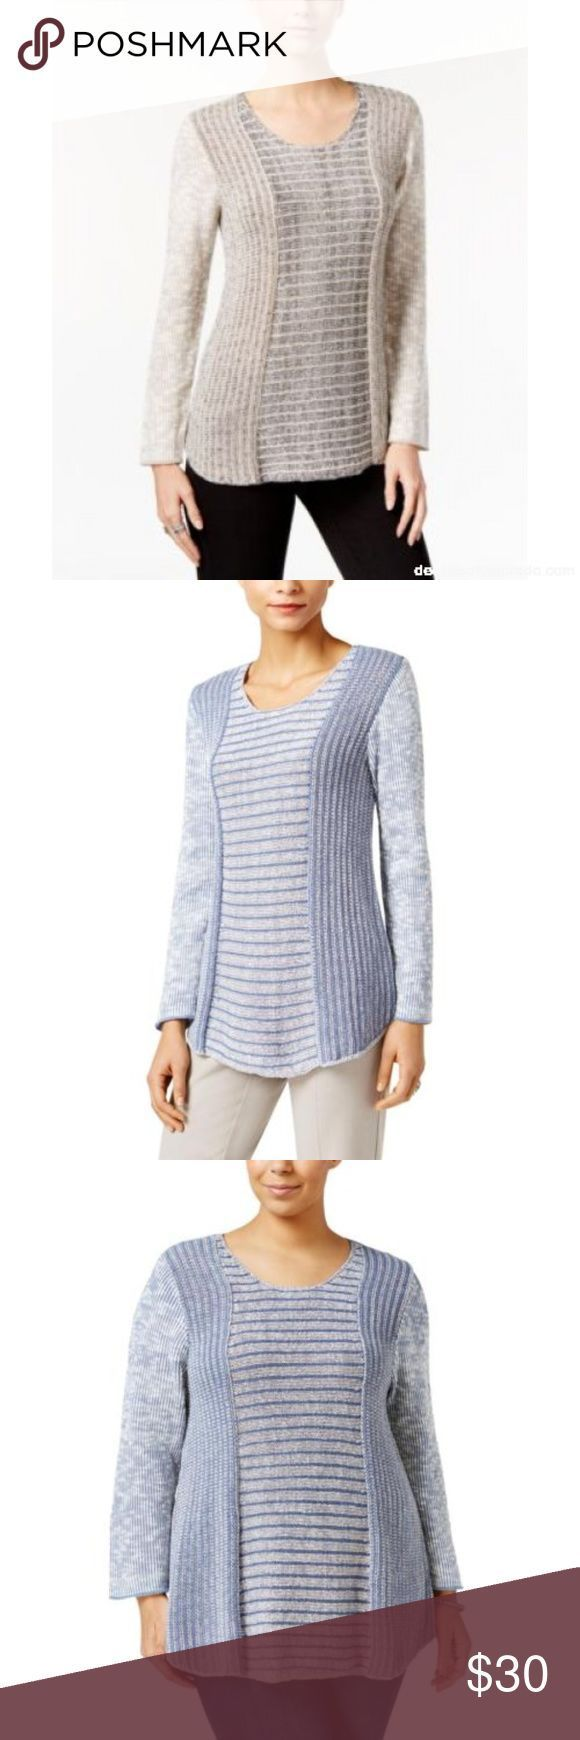 Style amp;Co Pullover Tunic Sweater – Beige Black – M NWT Never Worn (Has Macys …